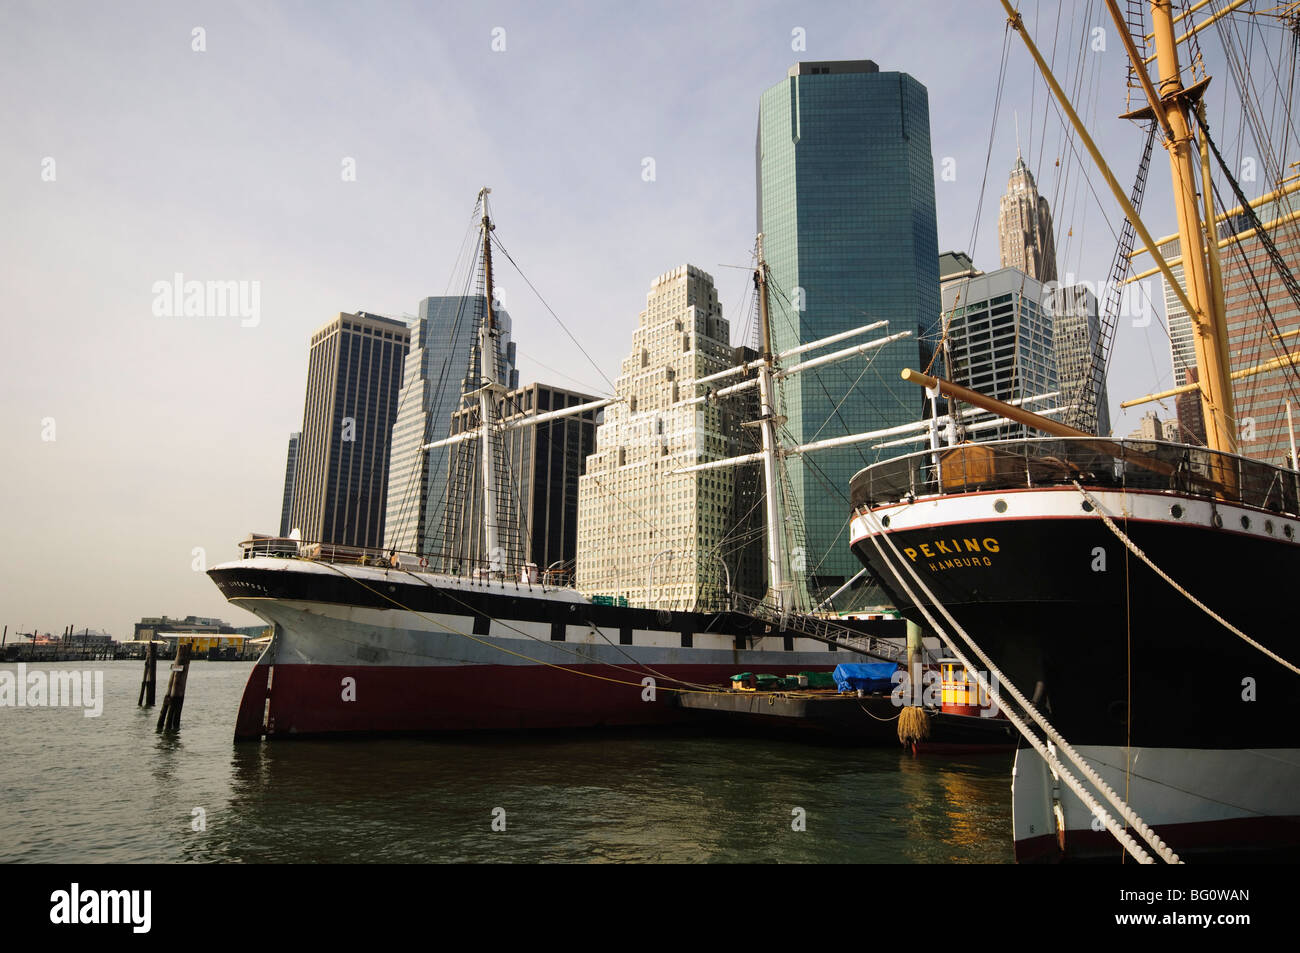 South Street Seaport, Lower Manhattan, New York City, New York, United States of America, North America - Stock Image